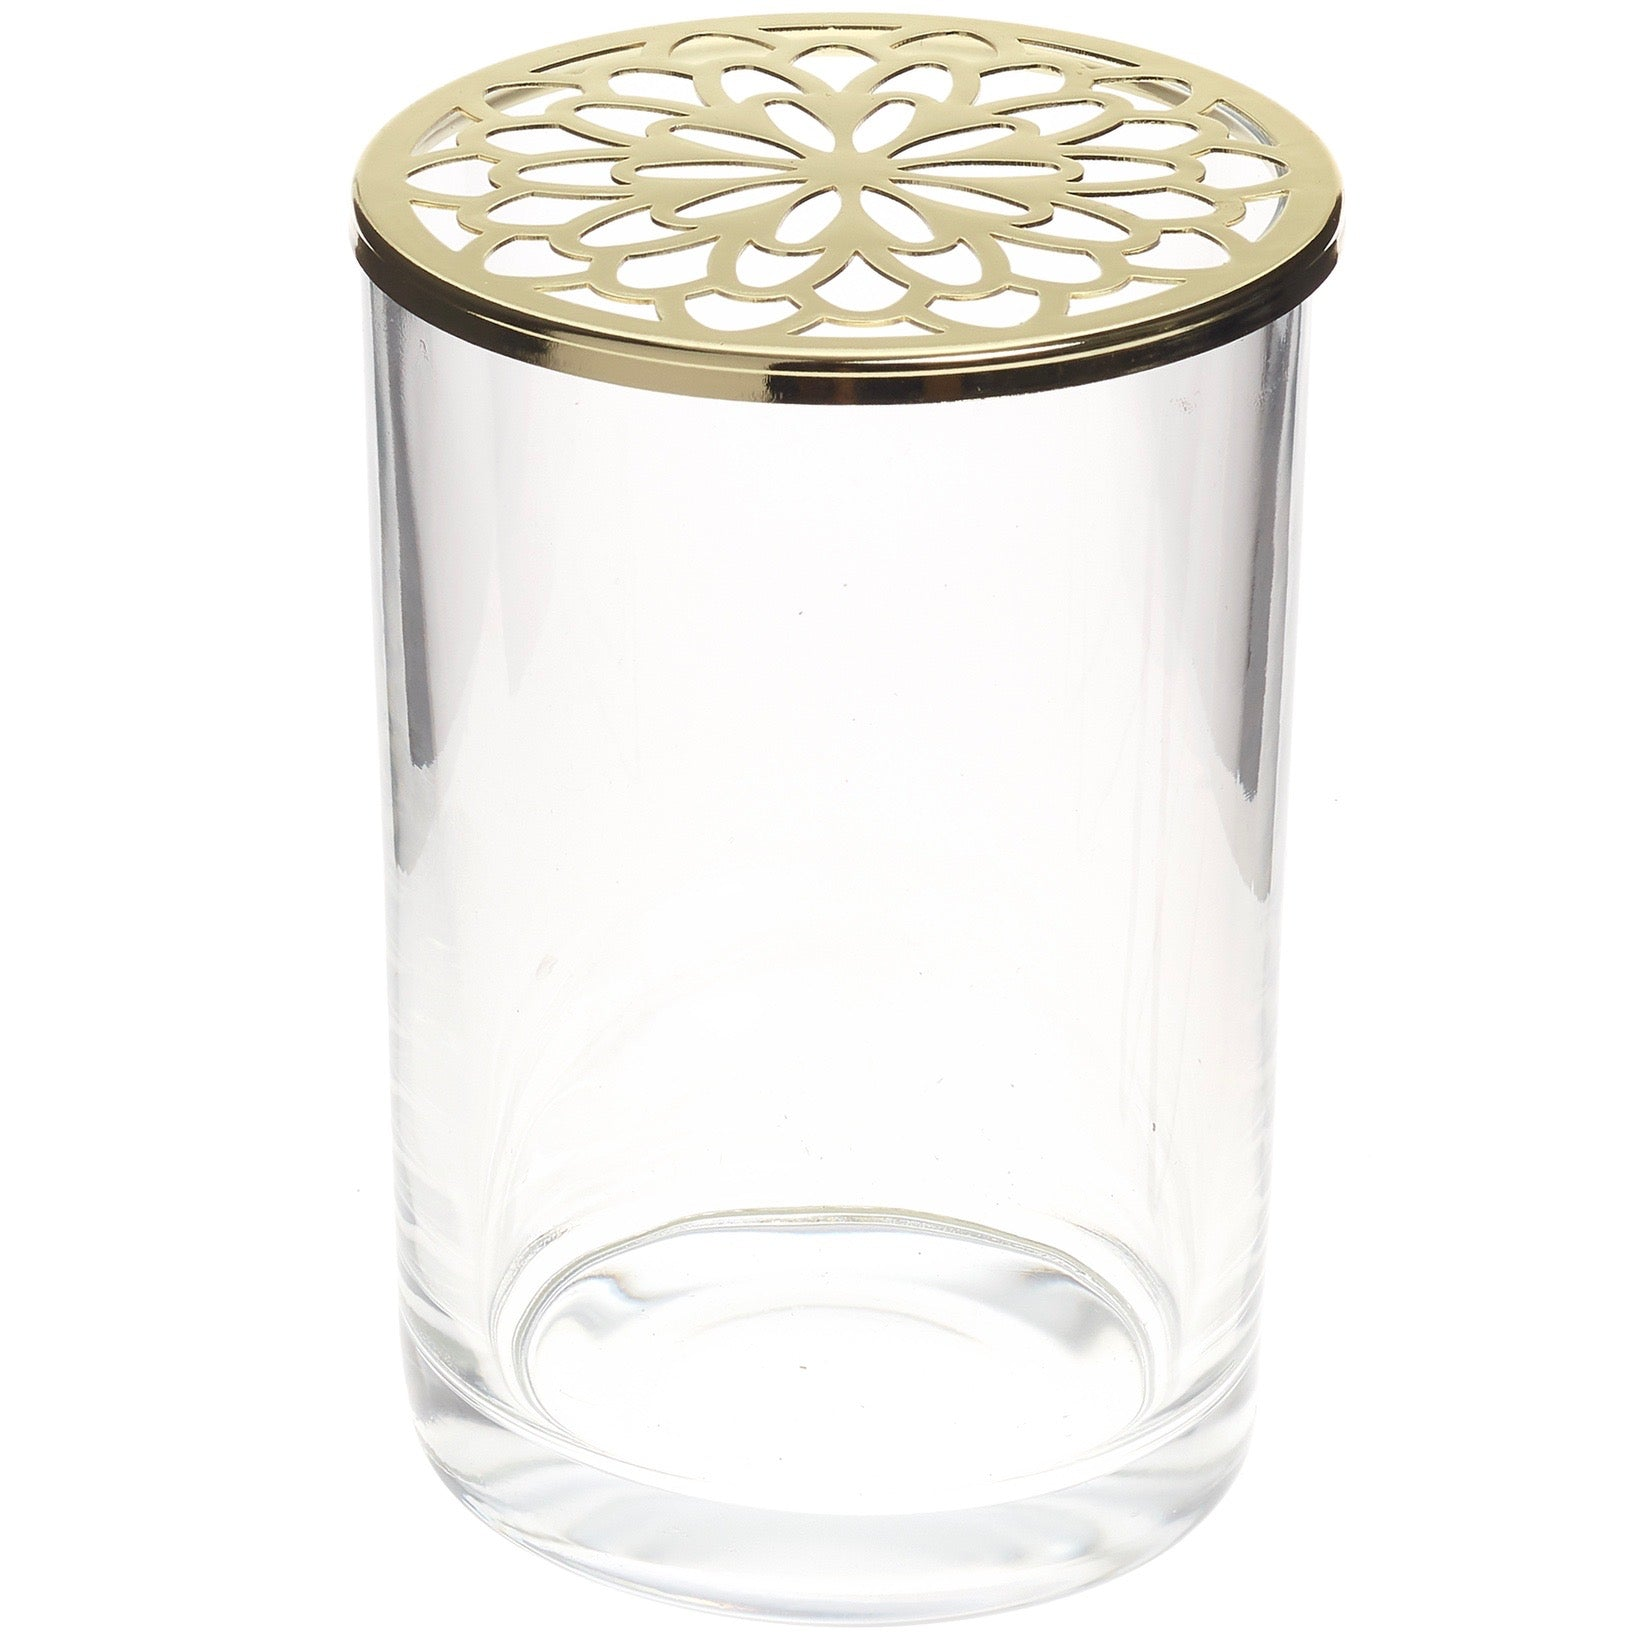 Tall Glass Vase with Gold Flower Grid Lid